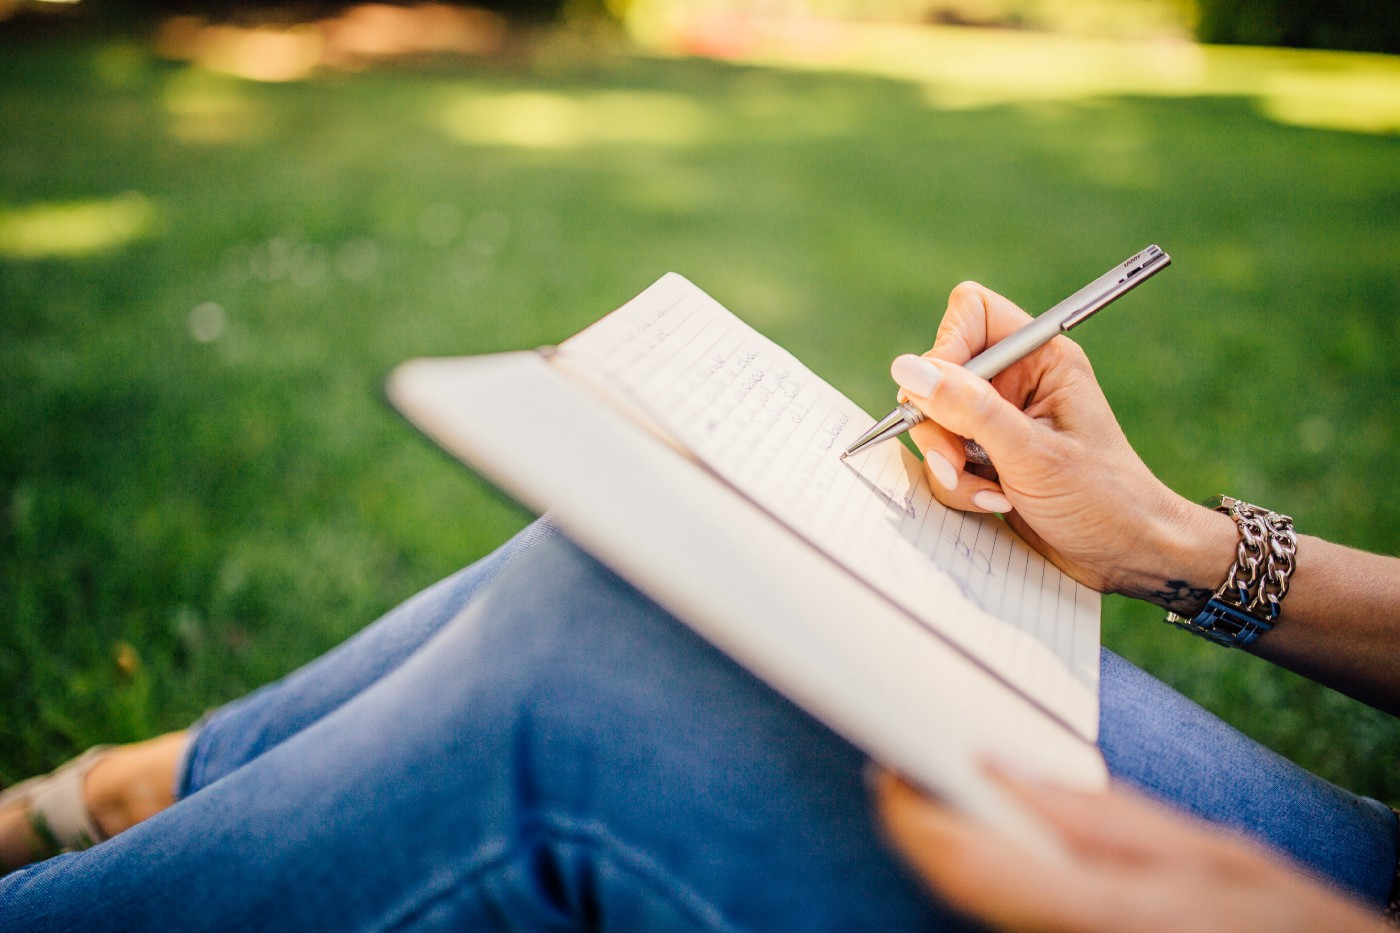 Woman's hand writing in a notebook, sitting on a grass, wearing blue skinny jeans